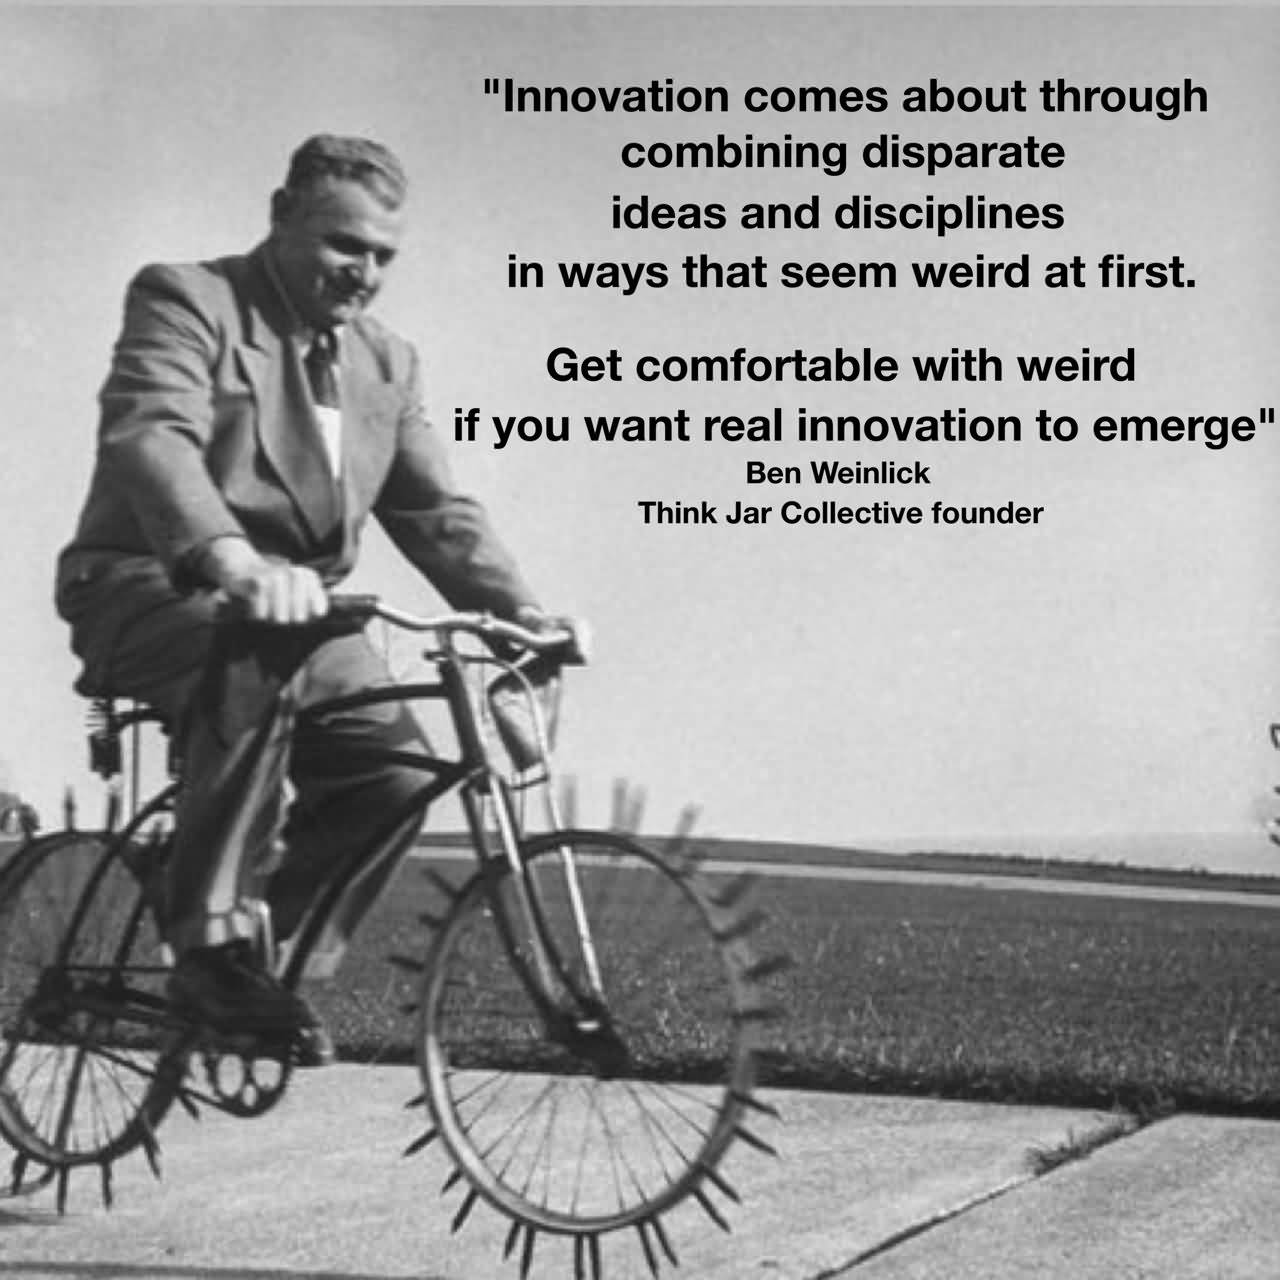 Creativity And Innovation Quotes: 62 Best Innovation Quotes For Inspiration